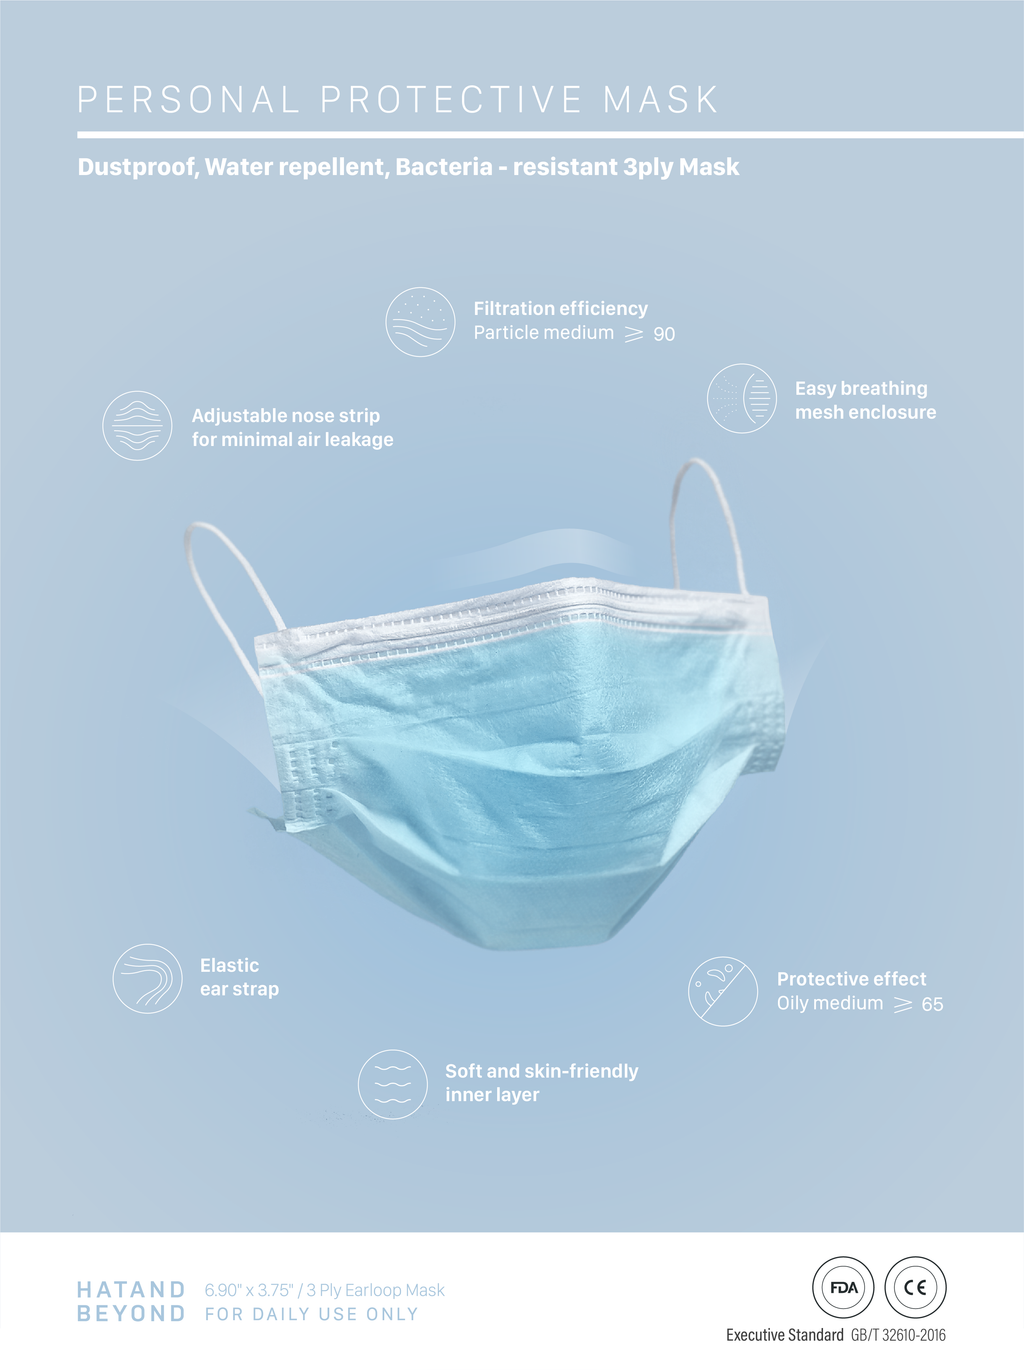 kn95_kn95 mask_kn95 respirator_kn95 certification_white mask_white face mask_white surgical mask_face mask_medical face mask_antiviral face mask_n95 face mask_n95 respirator face mask_disposable face mask gift_Blue